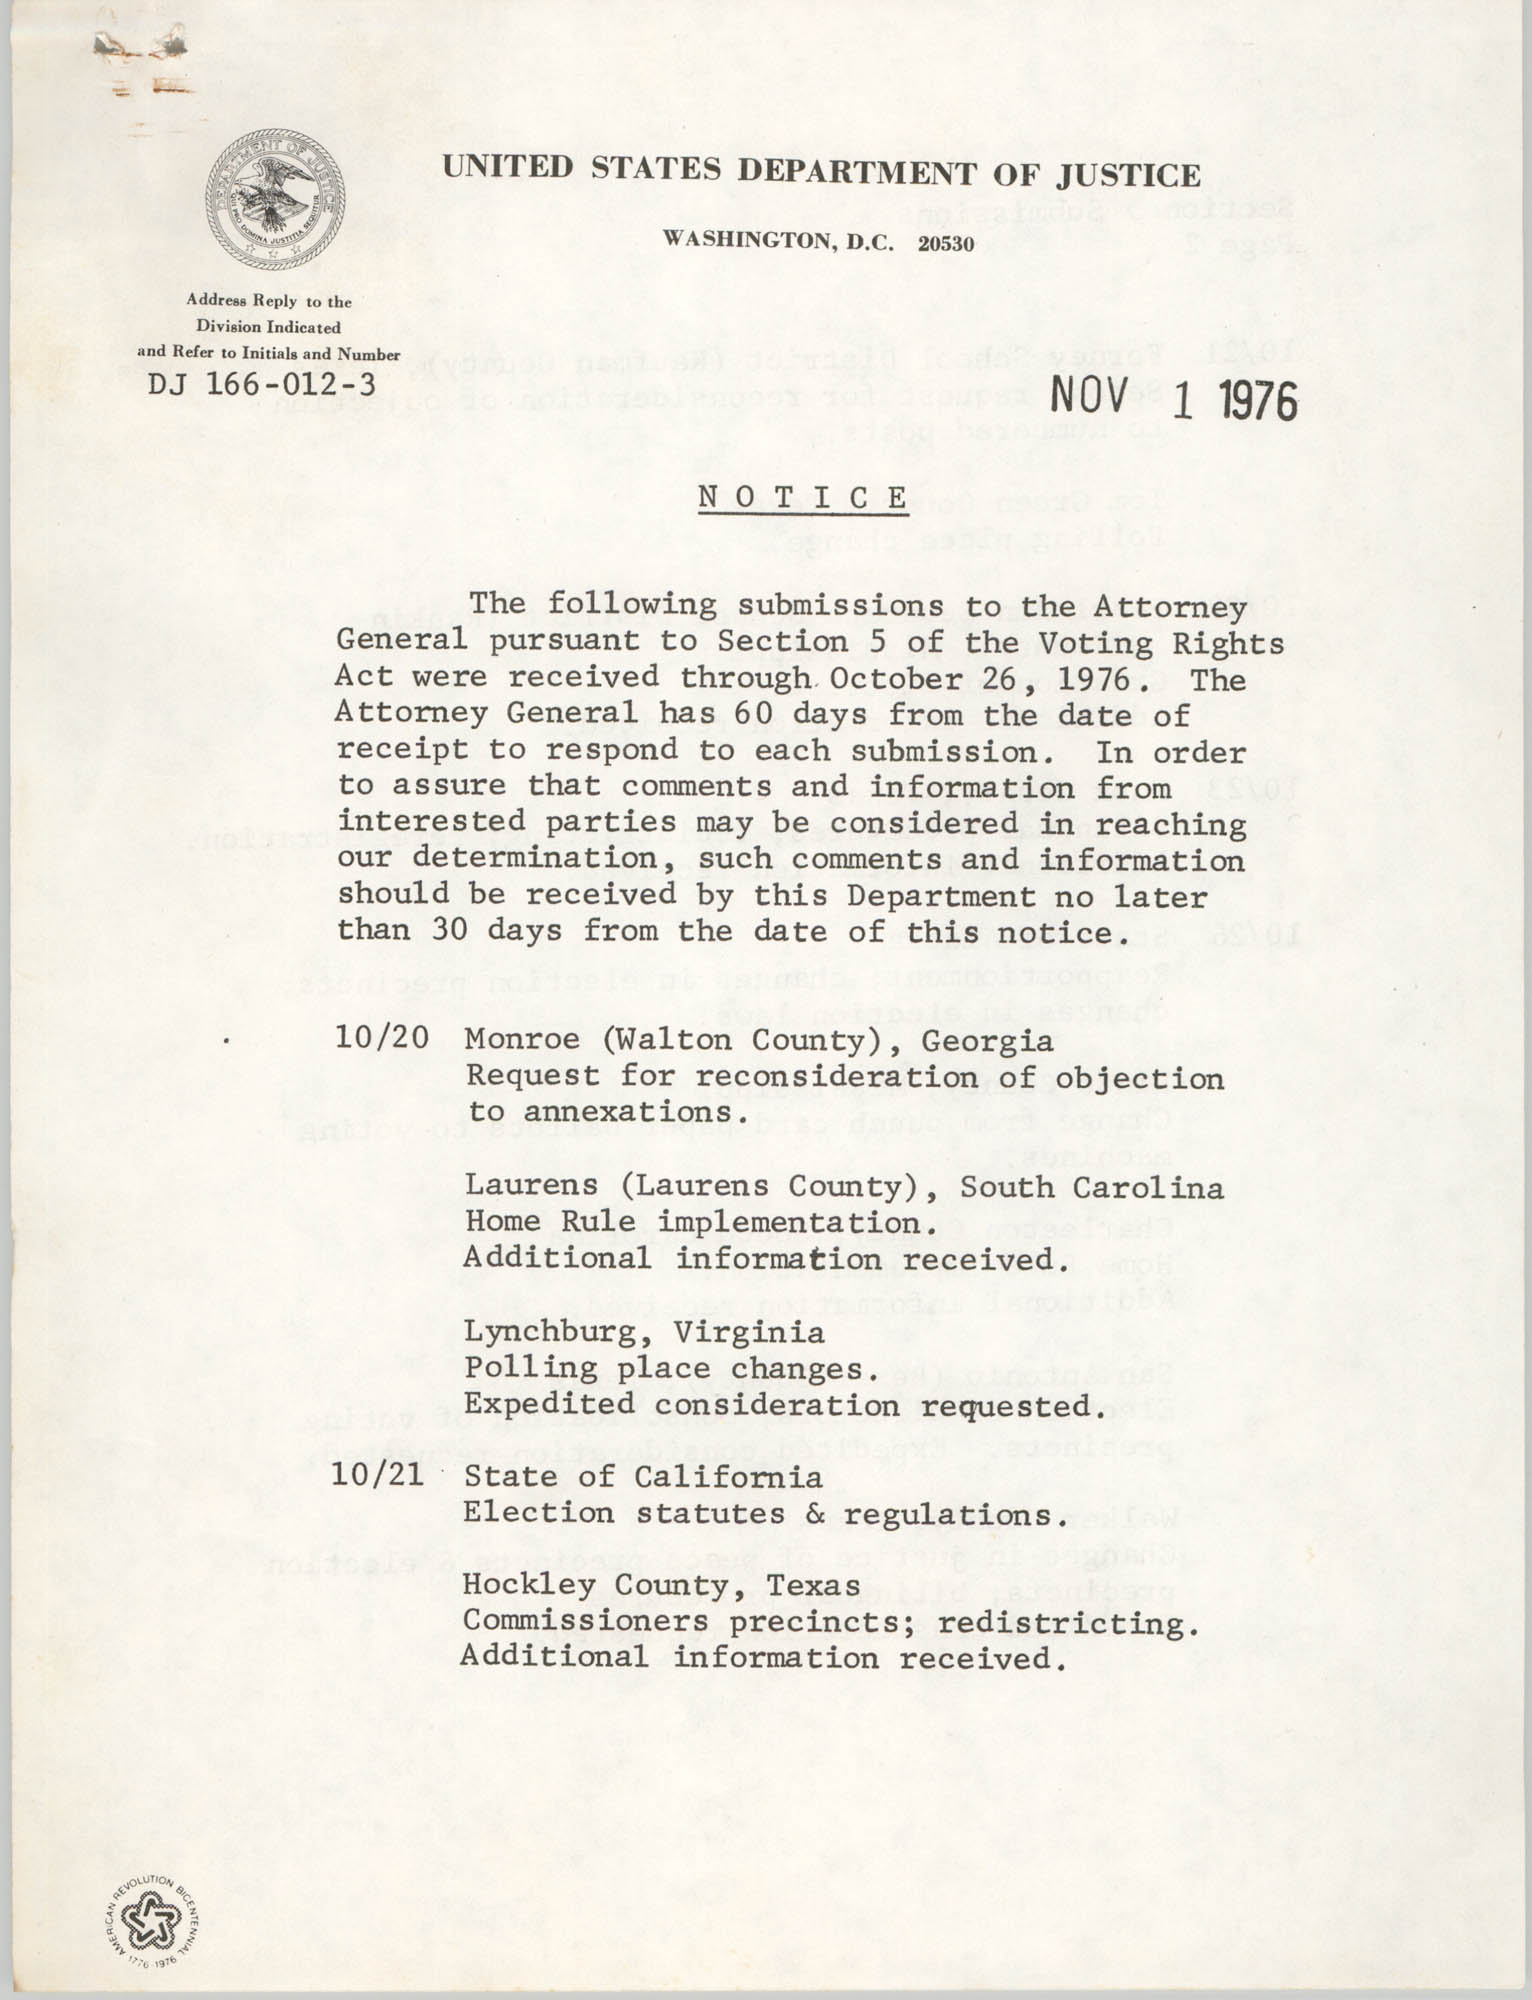 United States Department of Justice Notice, November 1, 1976